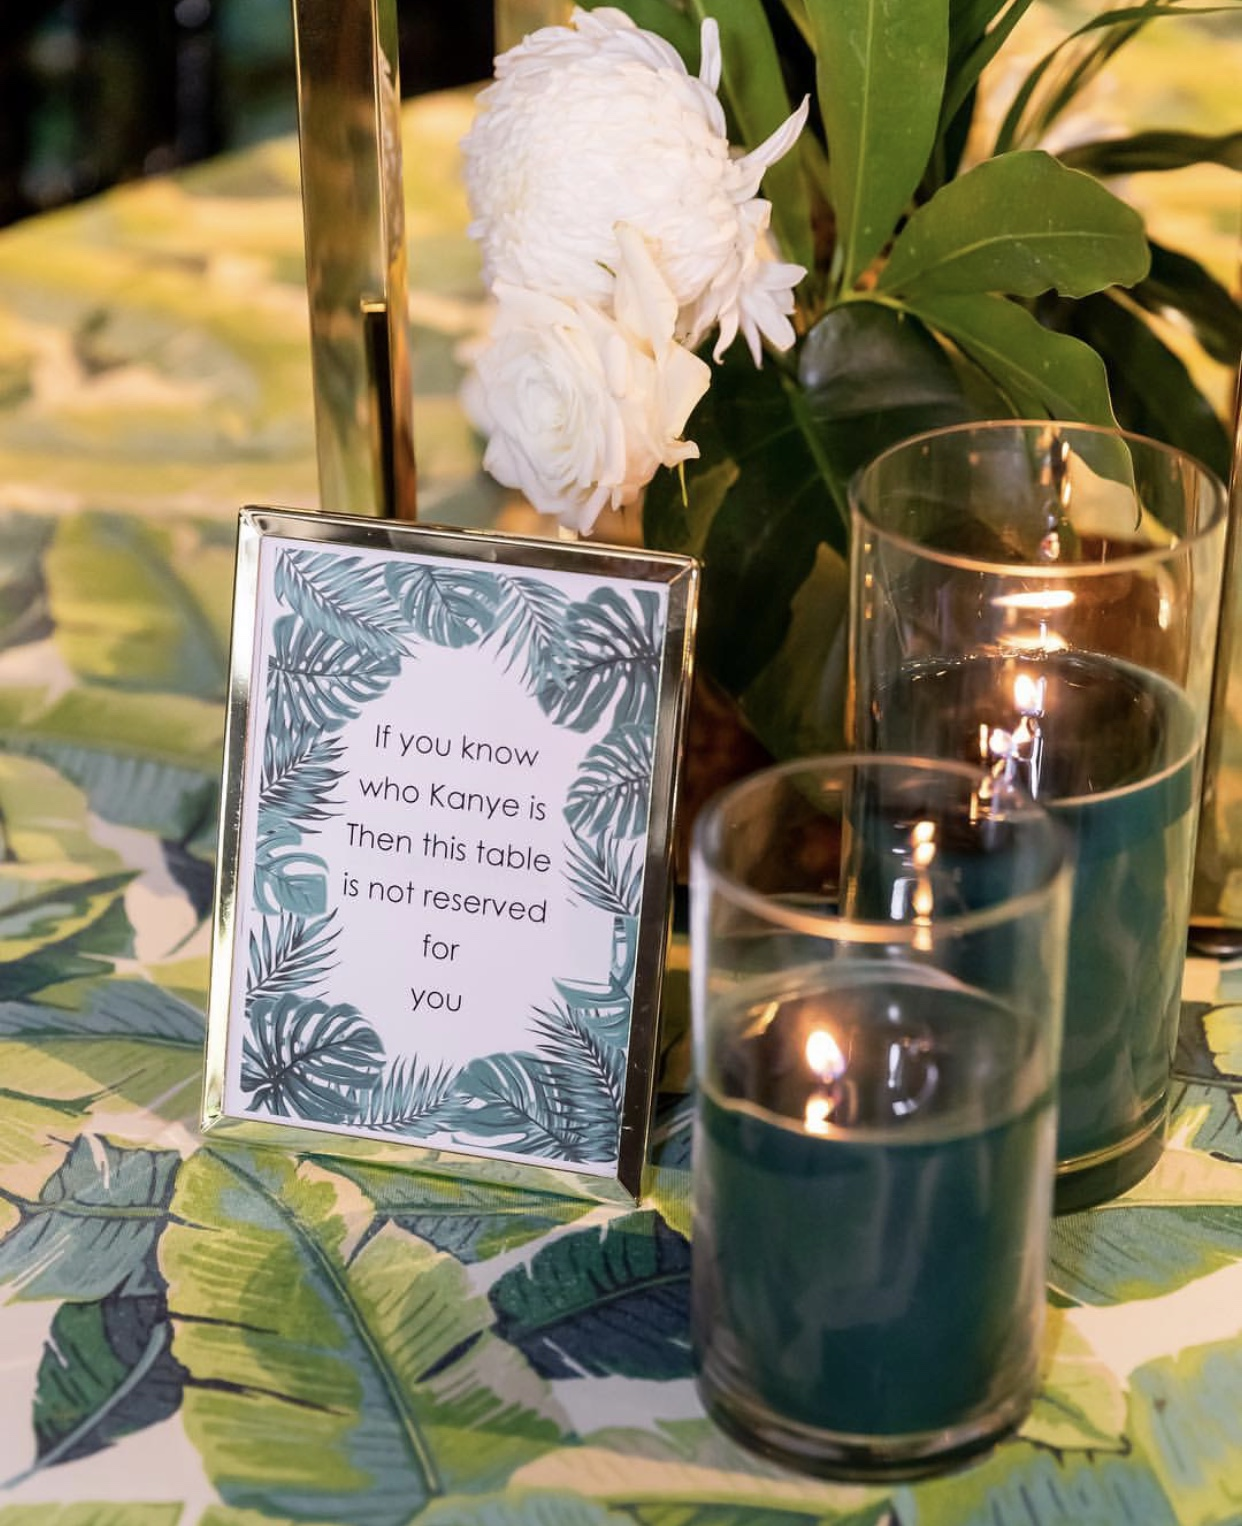 Hire_Palm_spring_luxury_linen_sydney_wedding_event_palm__grren_candles_frame_centrepeice.jpg